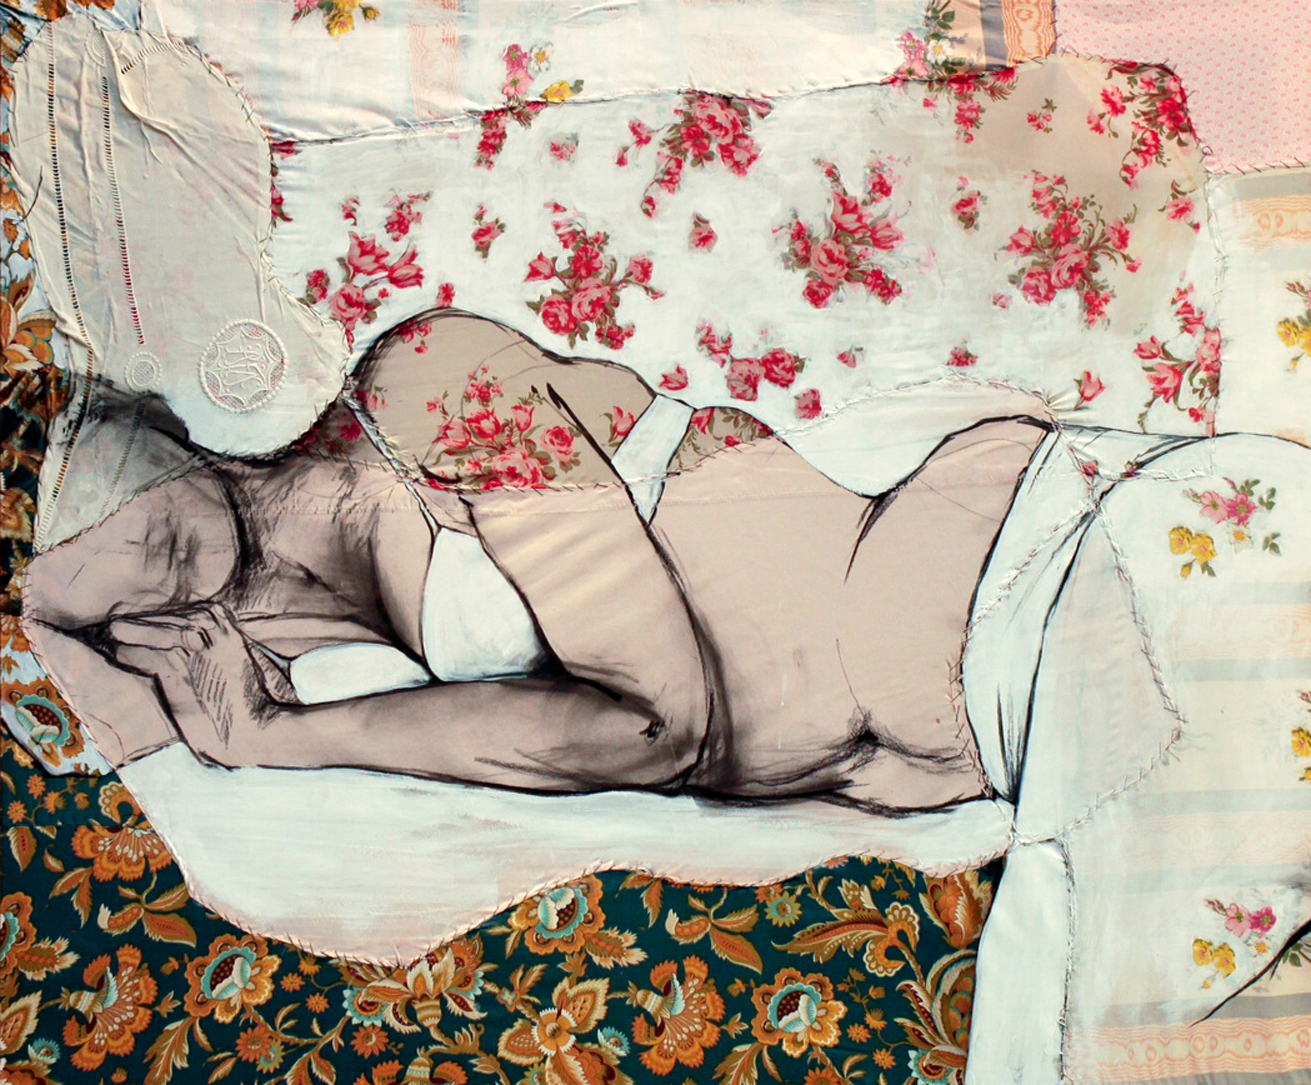 """Lea V  - Fabric, sheets, stitching, charcoal, mixed media on canvas - 39"""" x47"""" / 100 x 120 cm"""